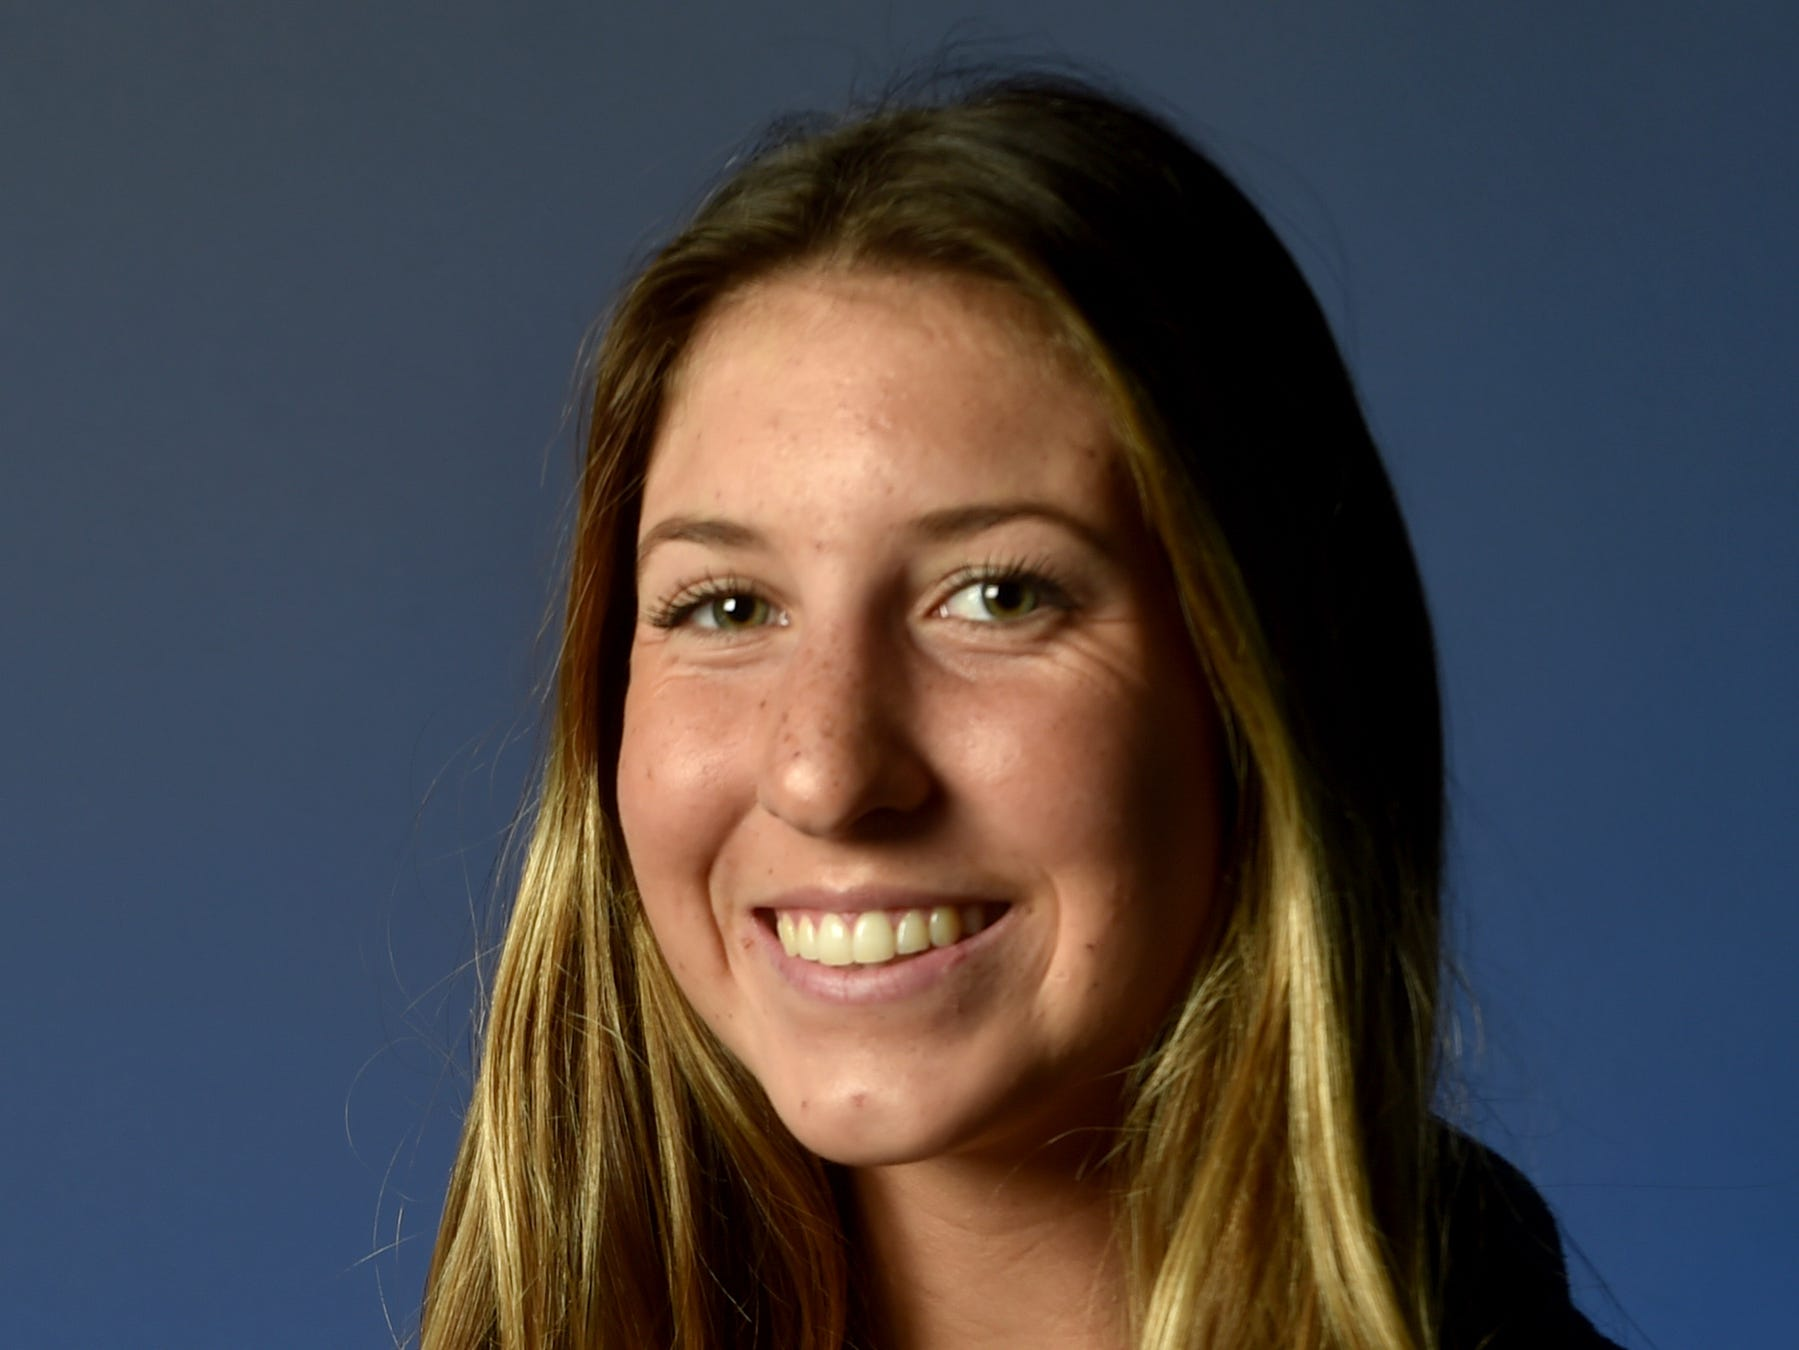 CALISTA WRIGHT, Grace Brethren, Middle blocker: CIF-Southern Section championships don't happen without a dynamic hitter, and the 5-foot-11 junior filled that role for the Lancers. Even on a balanced lineup, Wright stood out. She piled up 285 kills, 45 blocks and a kill percentage of 46.3 percent to help spark Grace Brethren to the Division 6 championship. She also notched 185 digs and 45 service aces. Her exploits earned her Player of the Year honors in CIF-SS Division 6. Already committed to Pepperdine, she's sports a 4.0 GPA and is a member of the California Scholarship Federation. She said beach volleyball and painting are her favorite hobbies and Kerri Walsh is her favorite athlete.